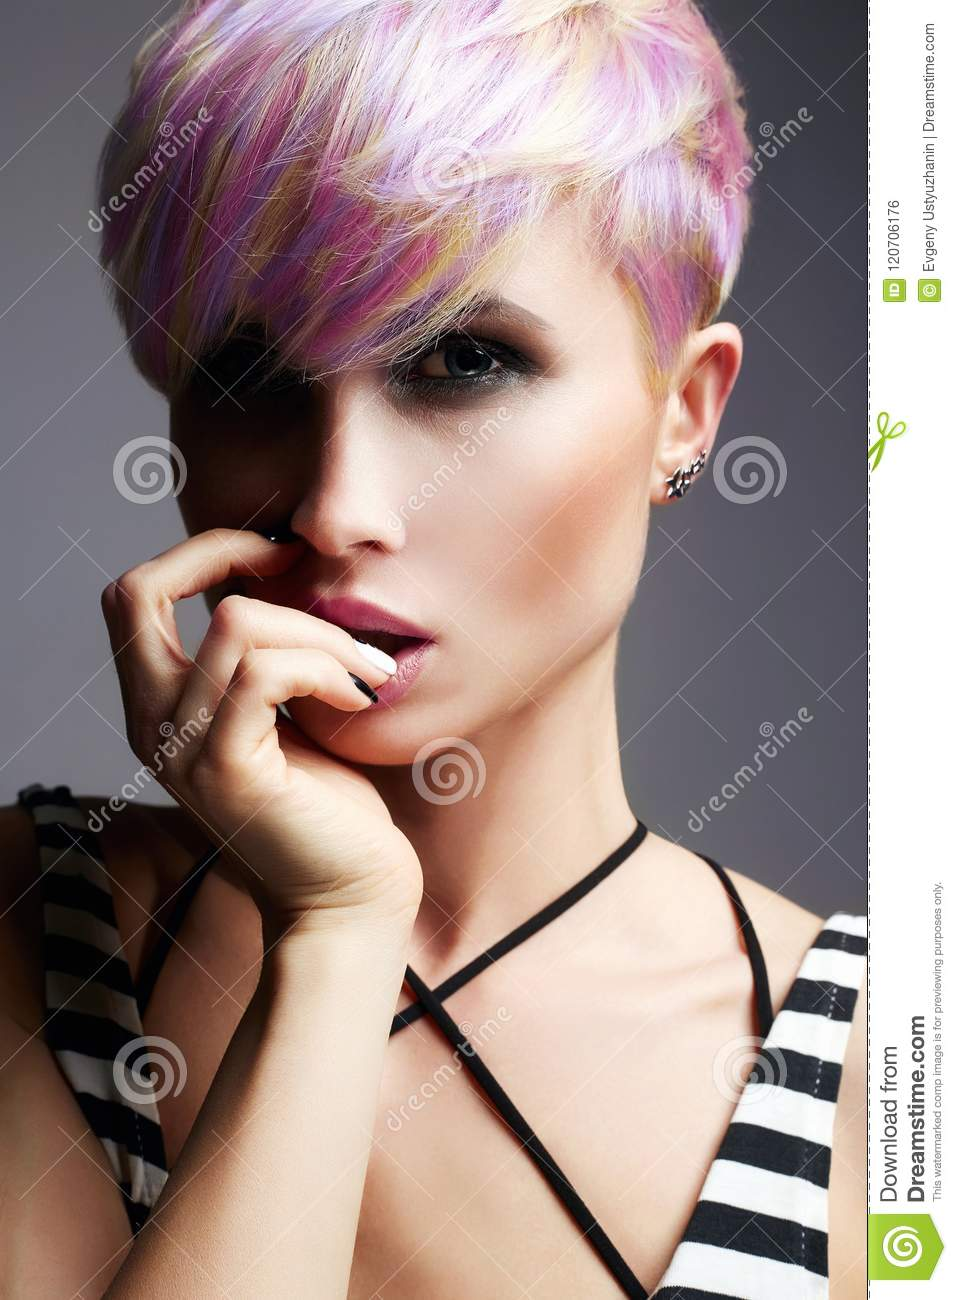 short hair girl colorful dyed hair stock photo image of blonde